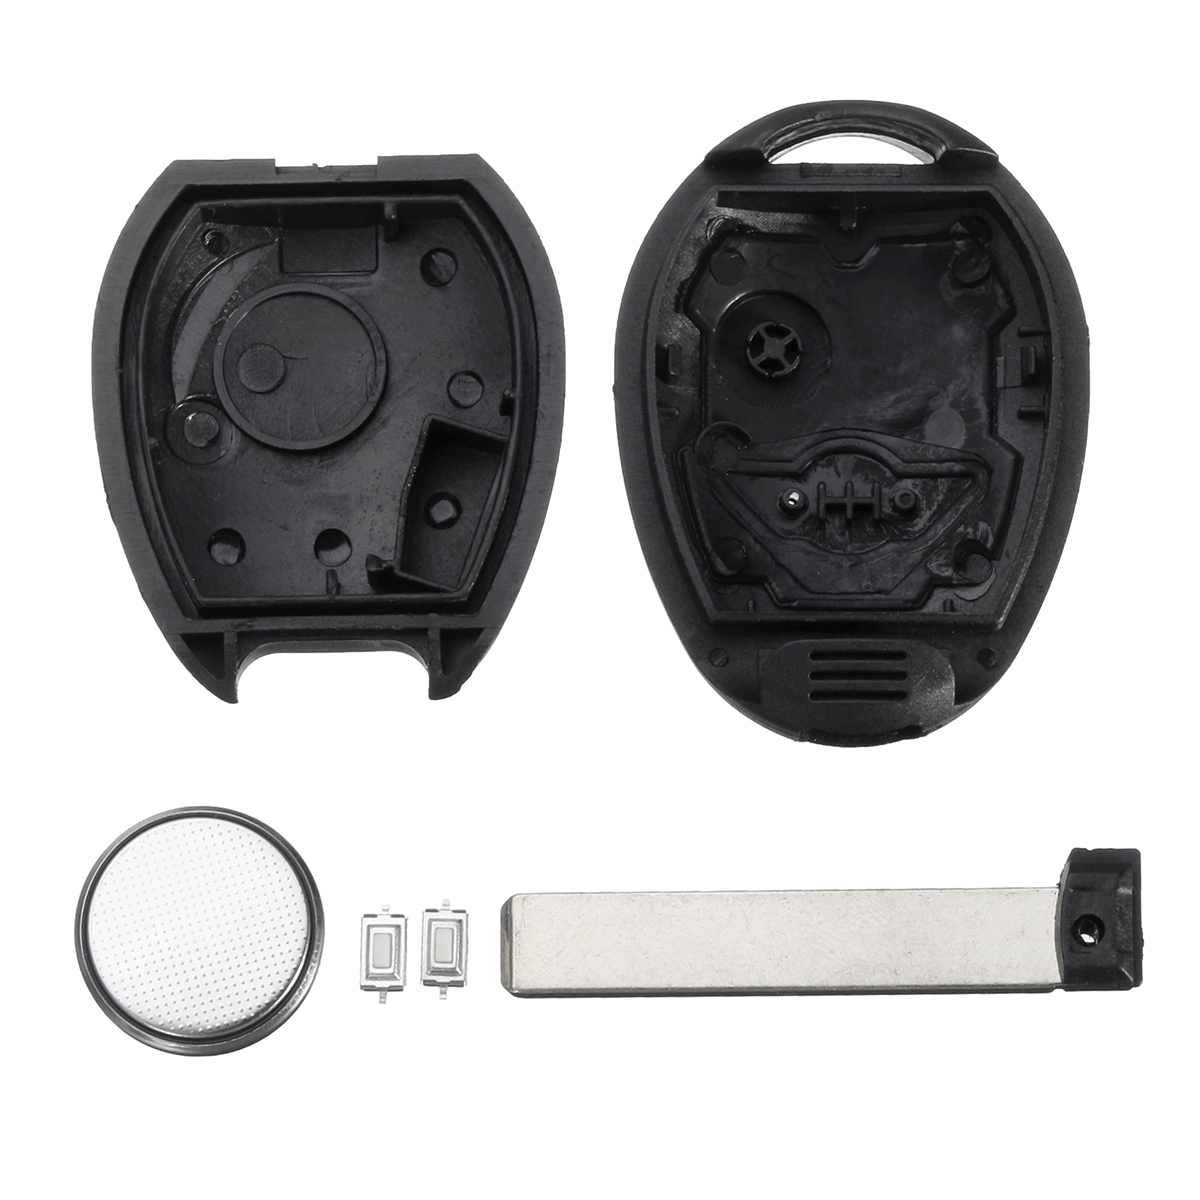 2 Buttons Remote Key Case Shell Repair Battery For BMW Mini One S Cooper R50